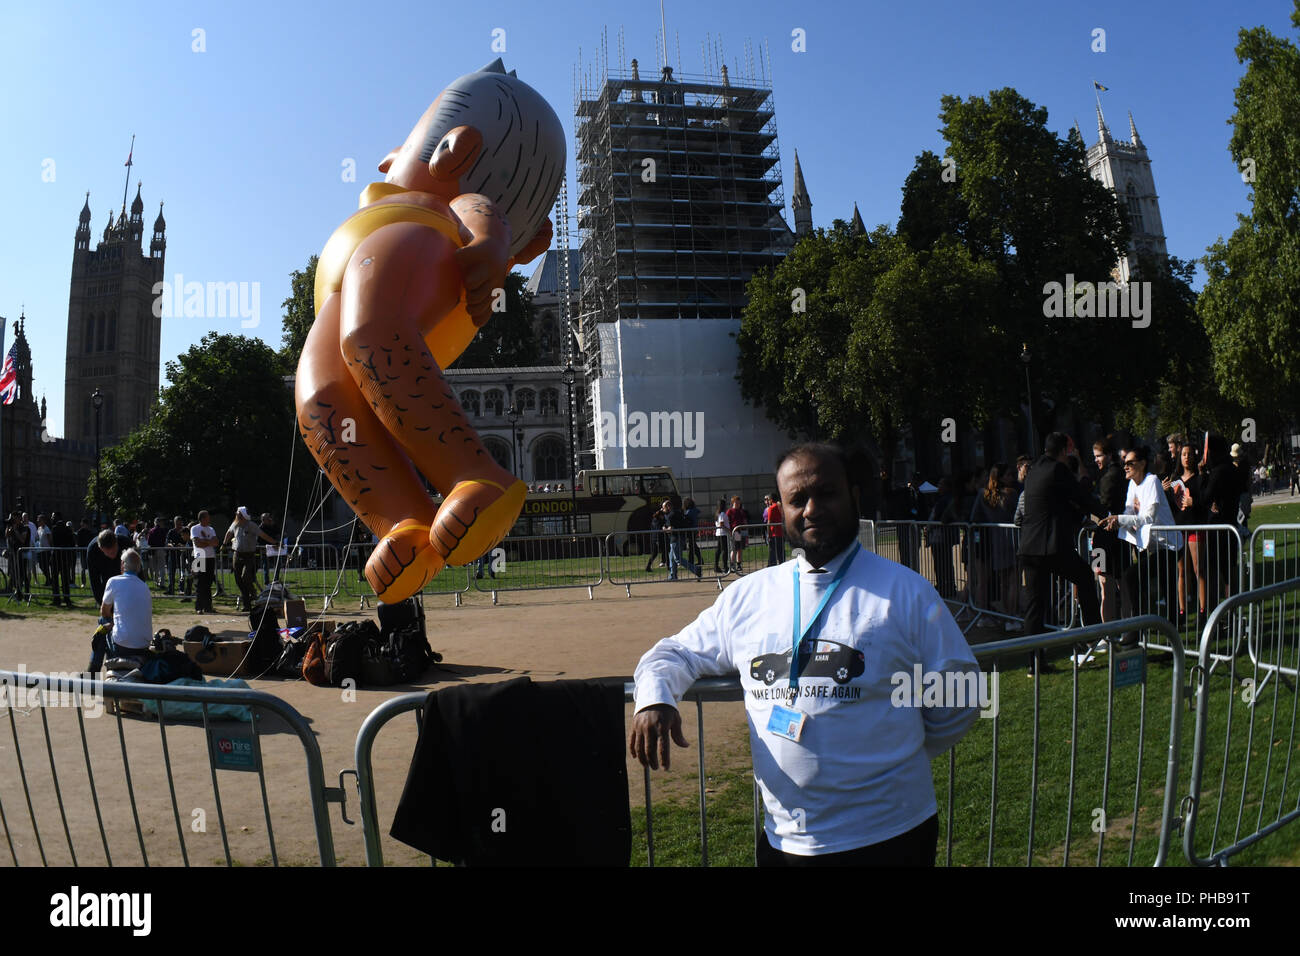 Alt-Right,  anti-Mayor of London take the revenge after Trump baby with a 29ft Gaint ballon of a Bikini-clad Sadiq Khan blimp to fly over London at Parliament Square on 1st September 2018, London, UK. - Stock Image